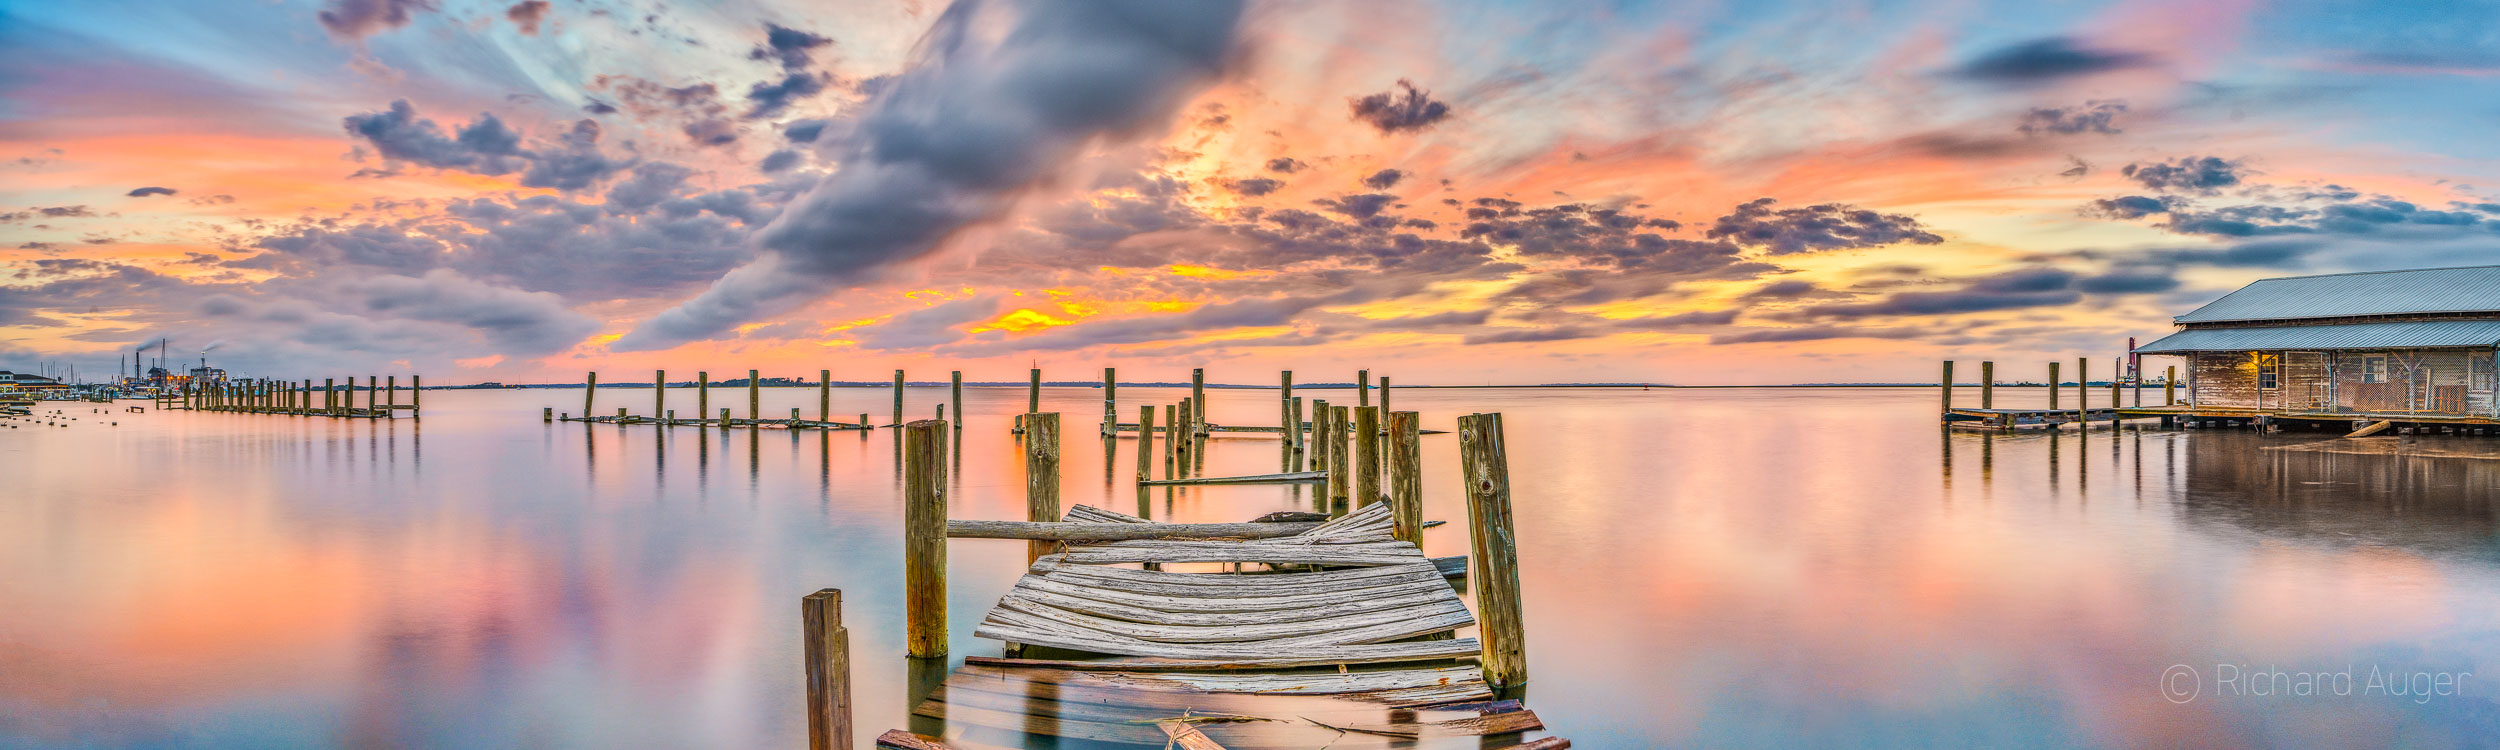 Fernandina Beach, Amelia Island, Florida, Dock, Sunset